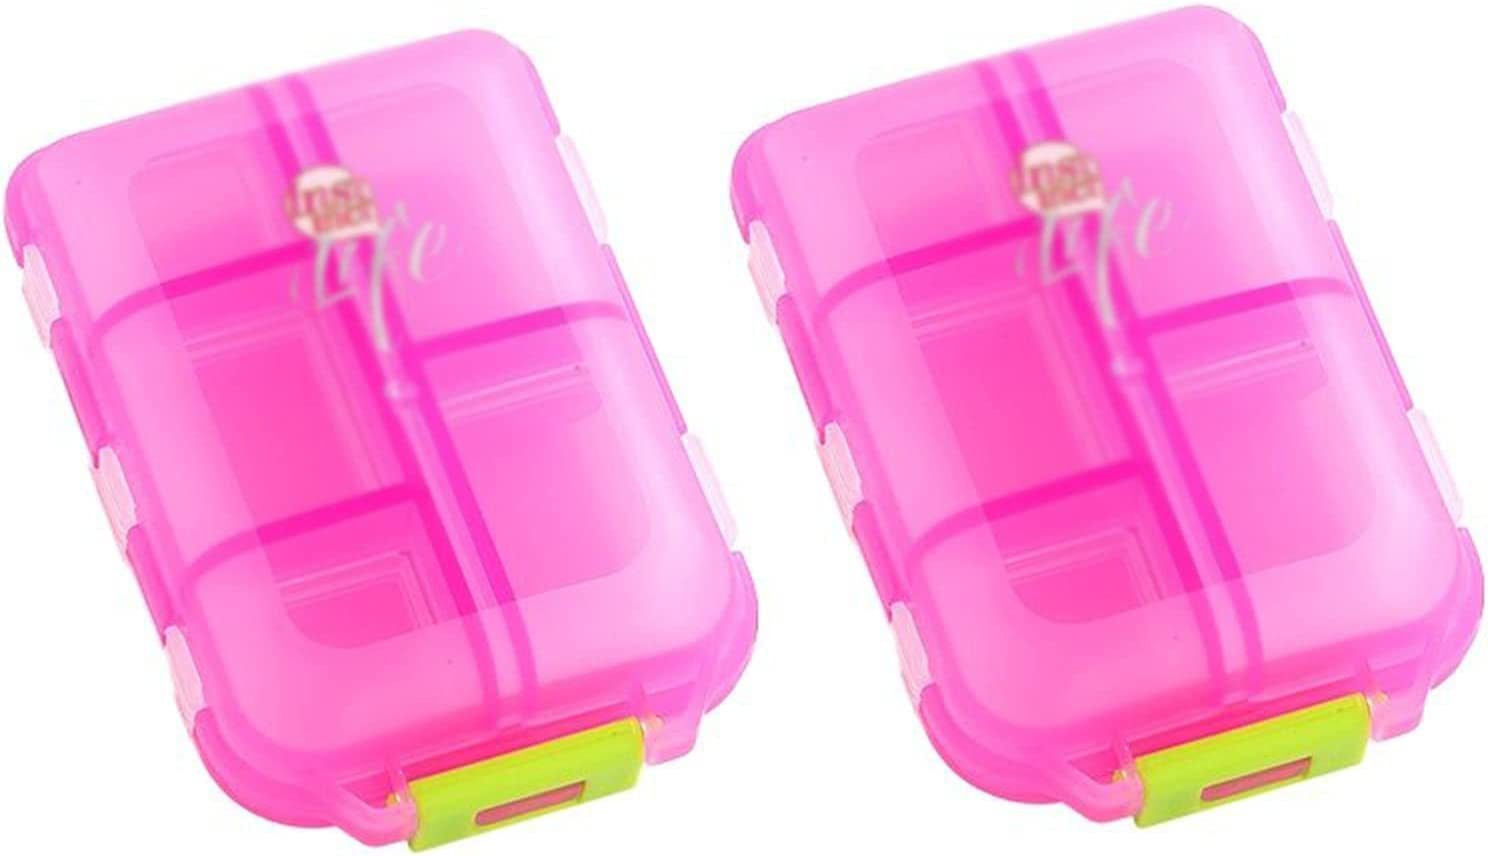 PZJ-Pill Box Portable 2 Pcs Great interest Organiser Pill Free BPA Ranking integrated 1st place Compartments